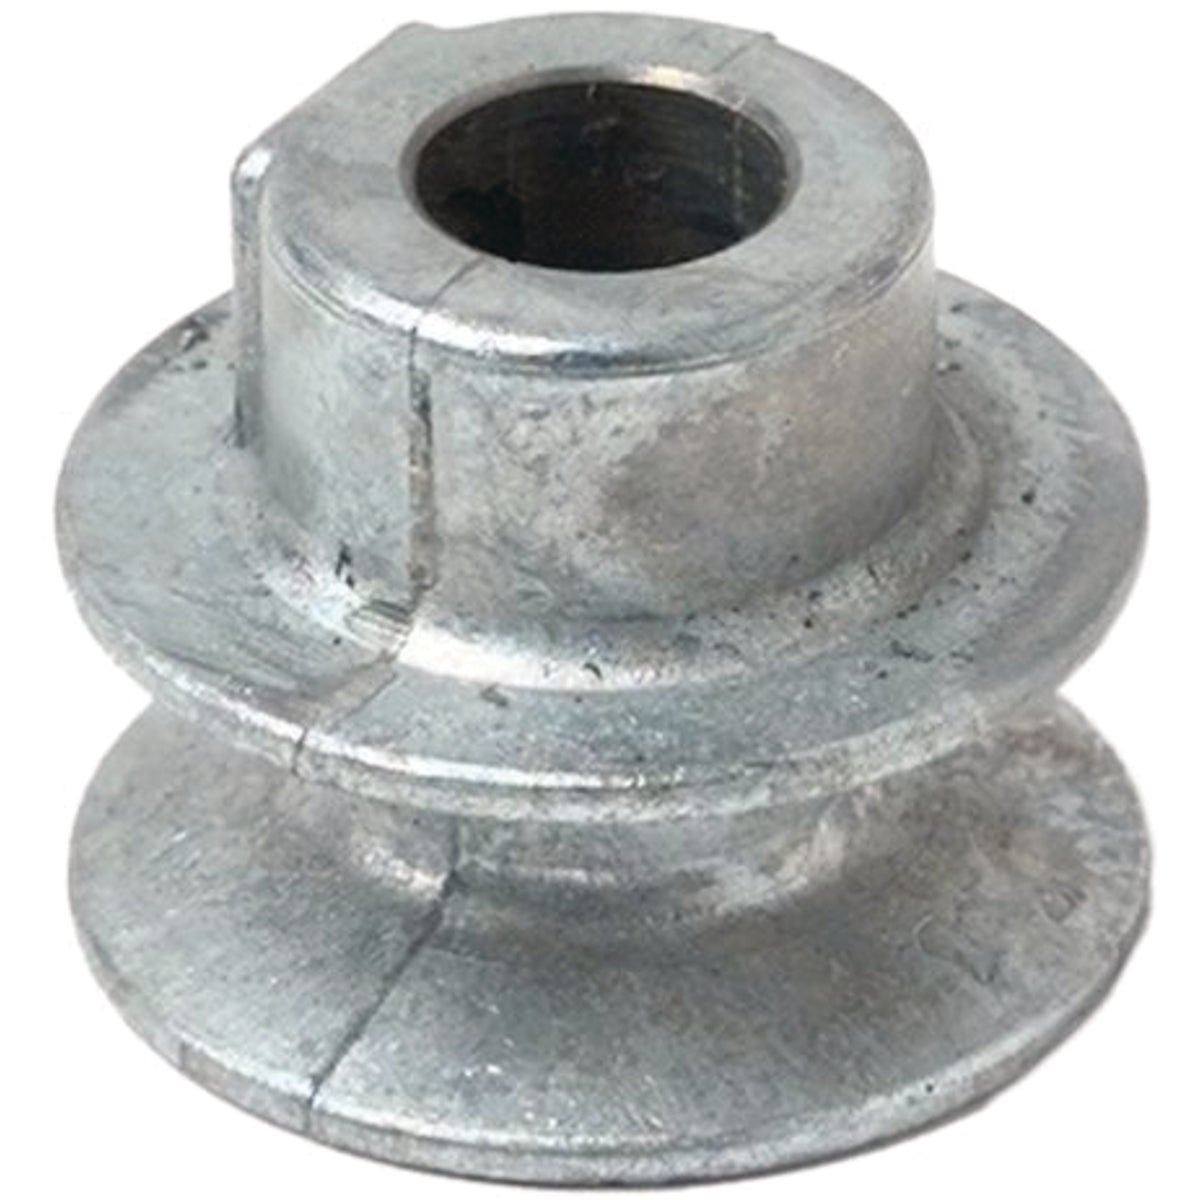 1-1/2X1/2 PULLEY